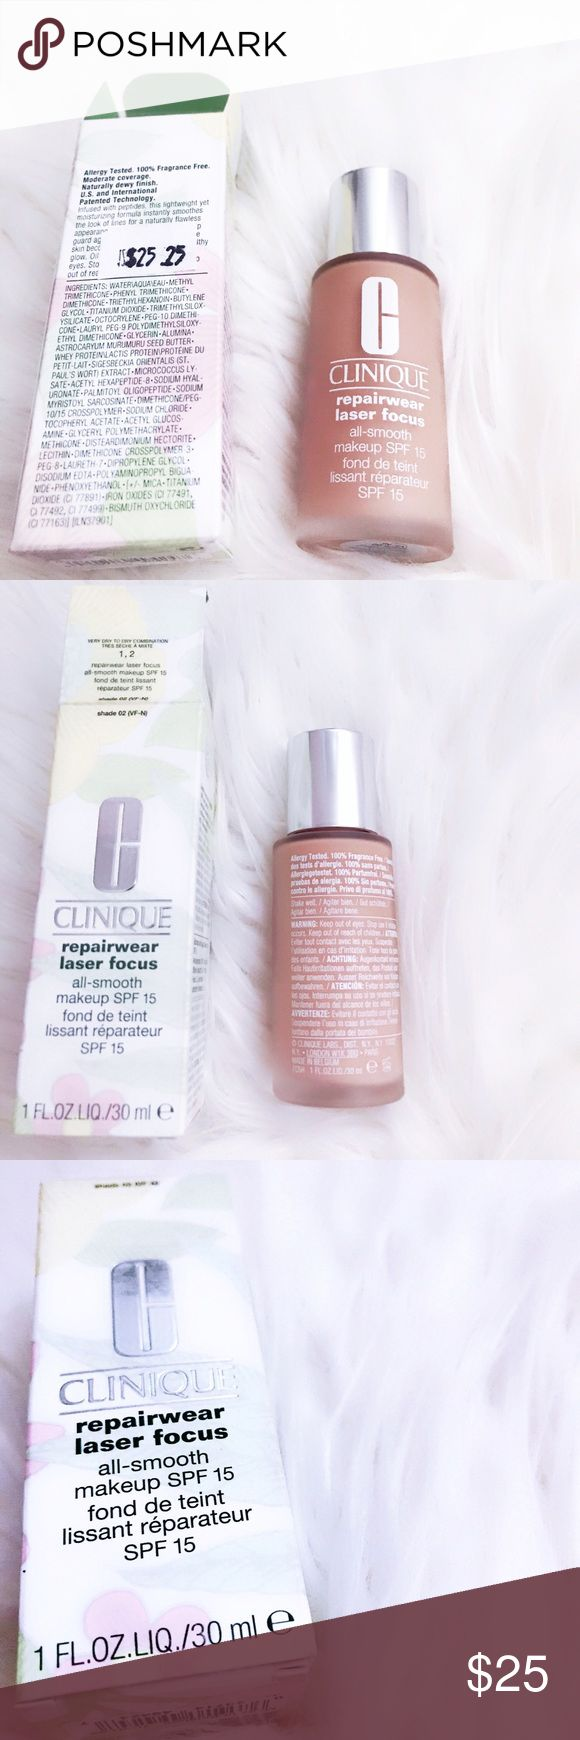 Clinique repairwear laser focus foundation Brand new!✨ CLINIQUE all smooth makeup SPF 15! Repairwear laser focus! Allergy tested, 100% fragrance free! Moderate coverage, naturally dewy finish! Infused with peptides! Formula instantly smoothes the look of fine lines! For a naturally flawless appearance! Color shade 02. Fair to medium skin tones. Very dry to dry combination skin. RETAIL $25.25 offers welcome ❤️no trades thank you Clinique Makeup Foundation